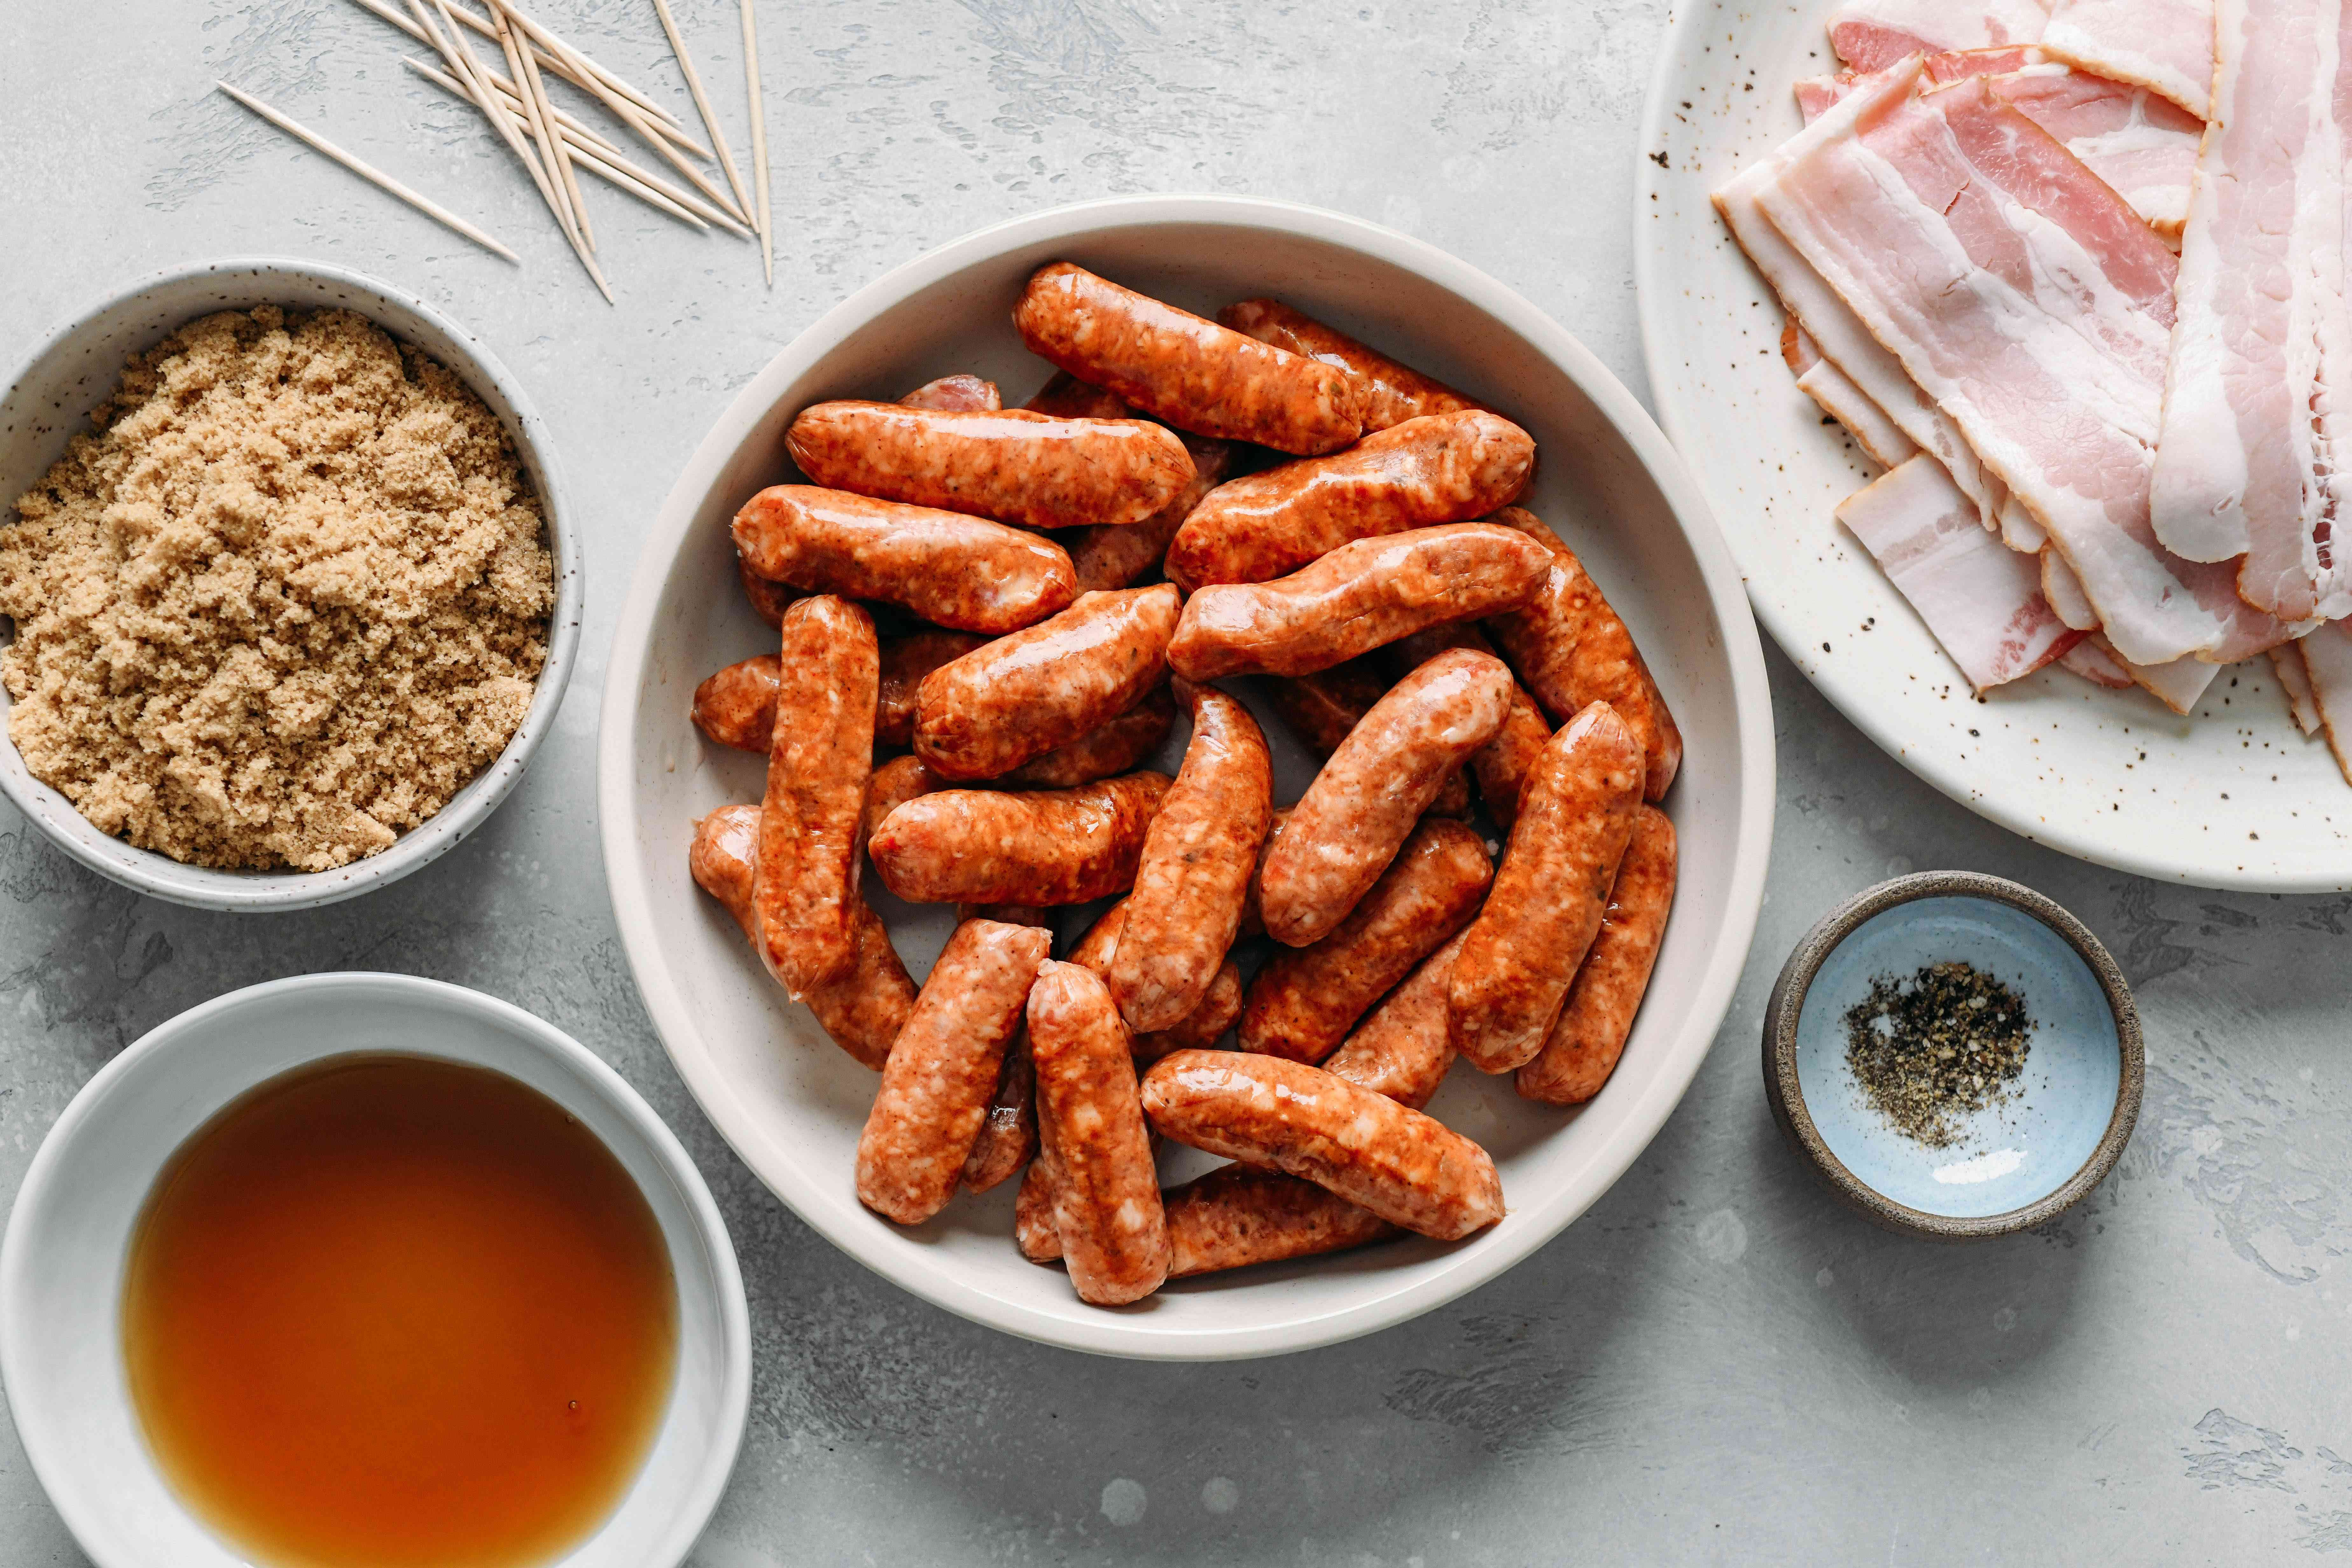 Bacon Wrapped Sausages ingredients